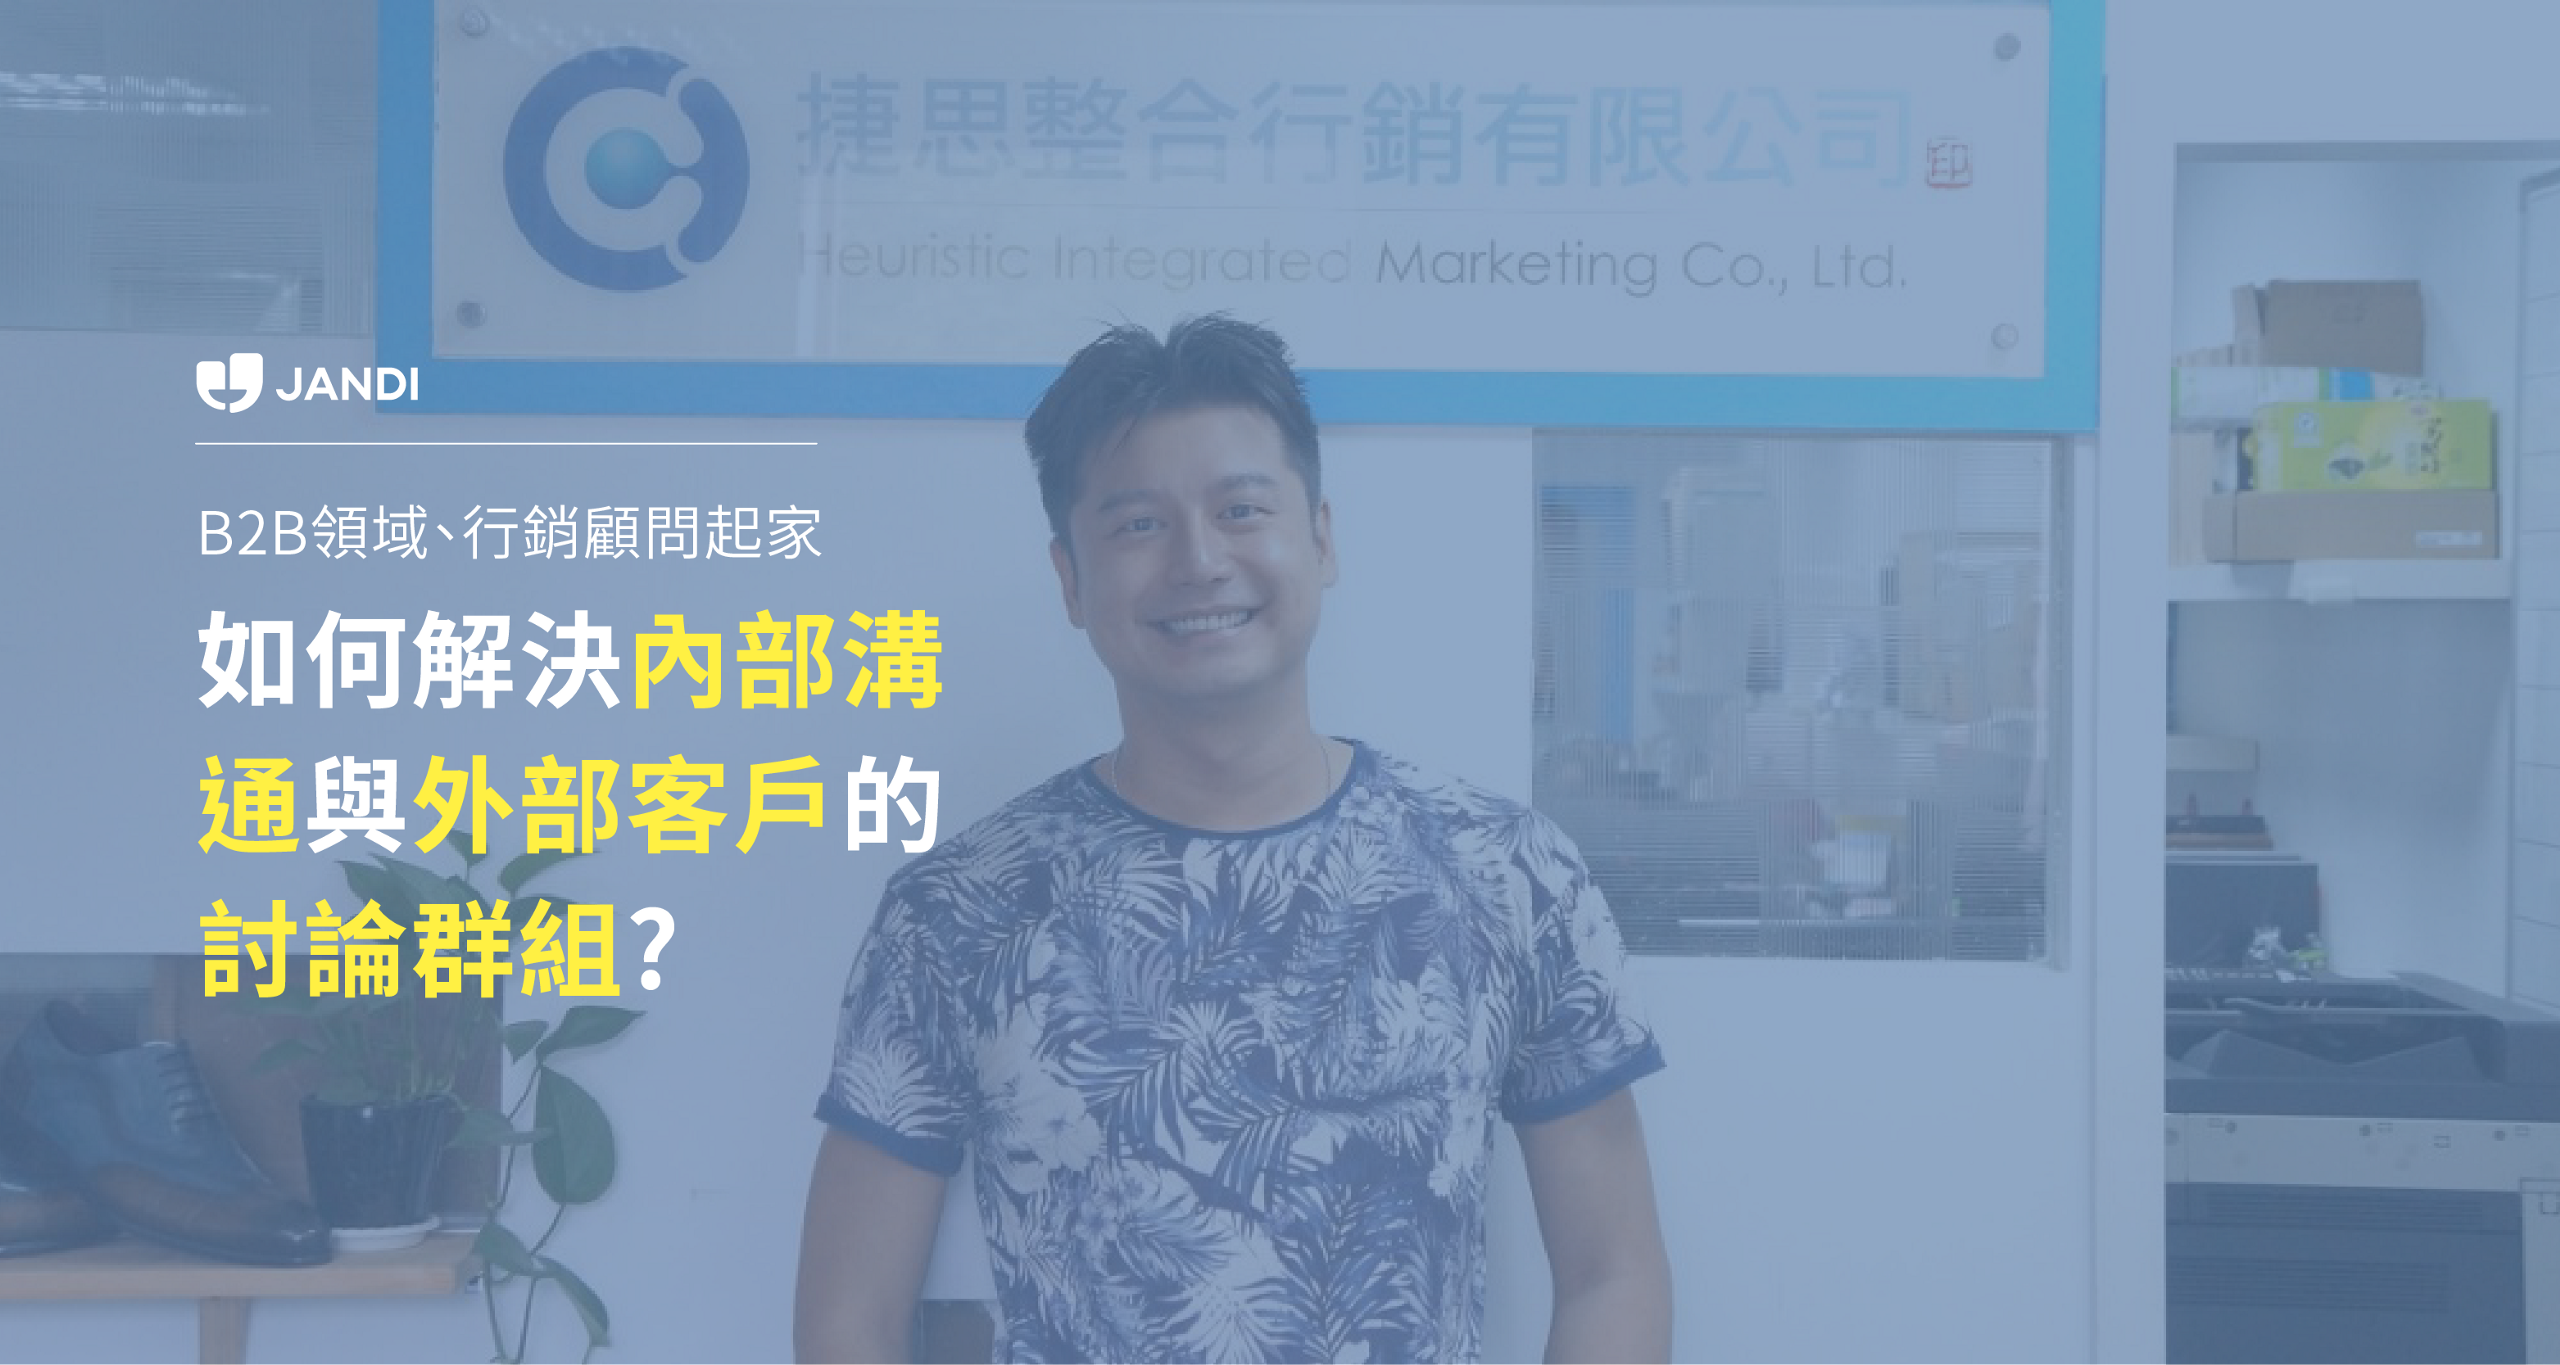 Product, Marketing, Instant messaging, Business, Presentation, Professional, Collaboration, LINE, Learning, 捷思整合行銷有限公司, presentation, Smile